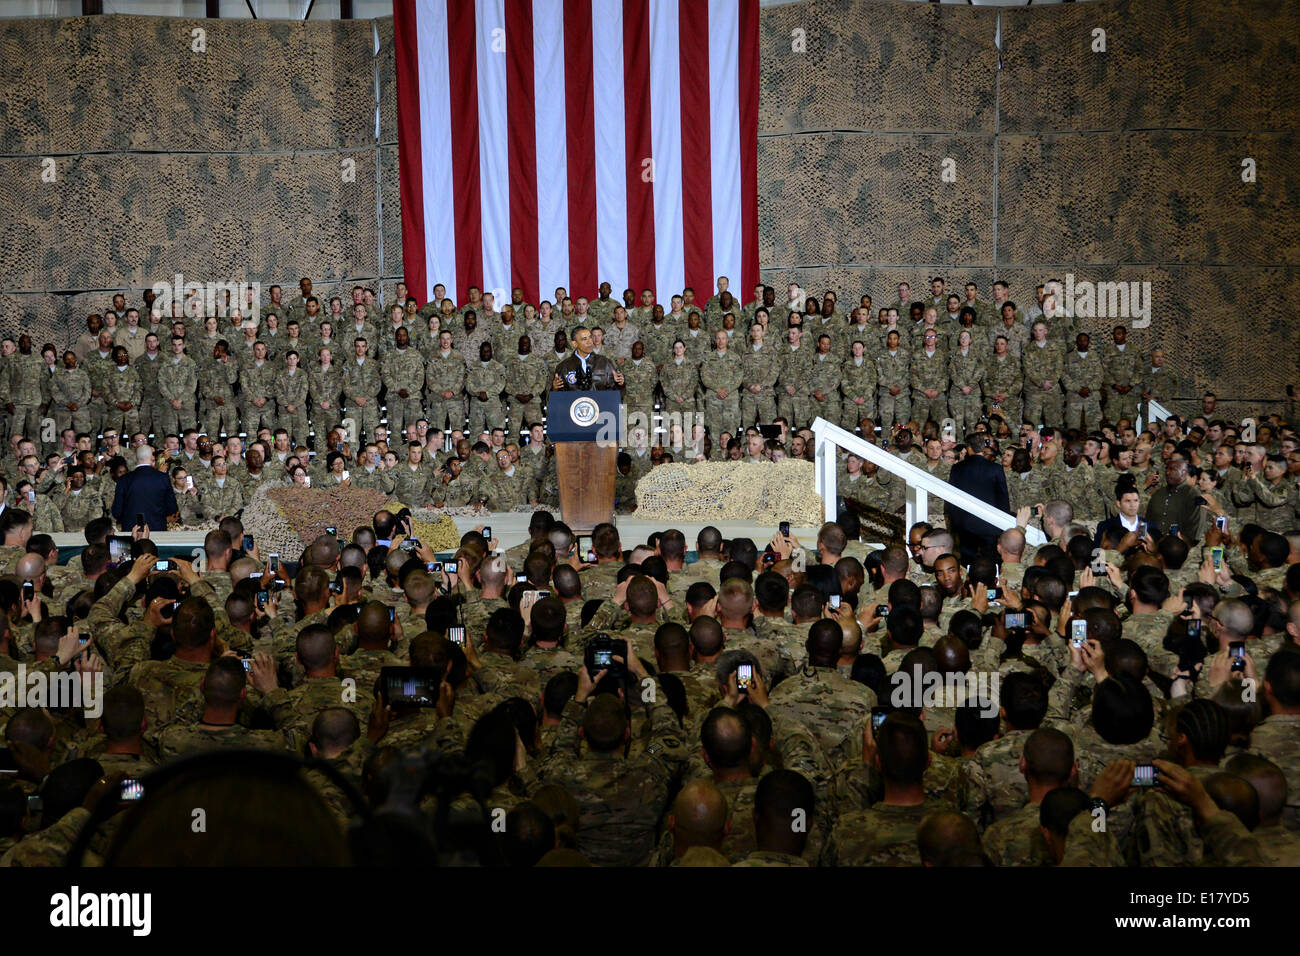 US President Barack Obama speaks to troops during an unannounced visit to Bagram Air Field May 25, 2014 in Afghanistan. - Stock Image